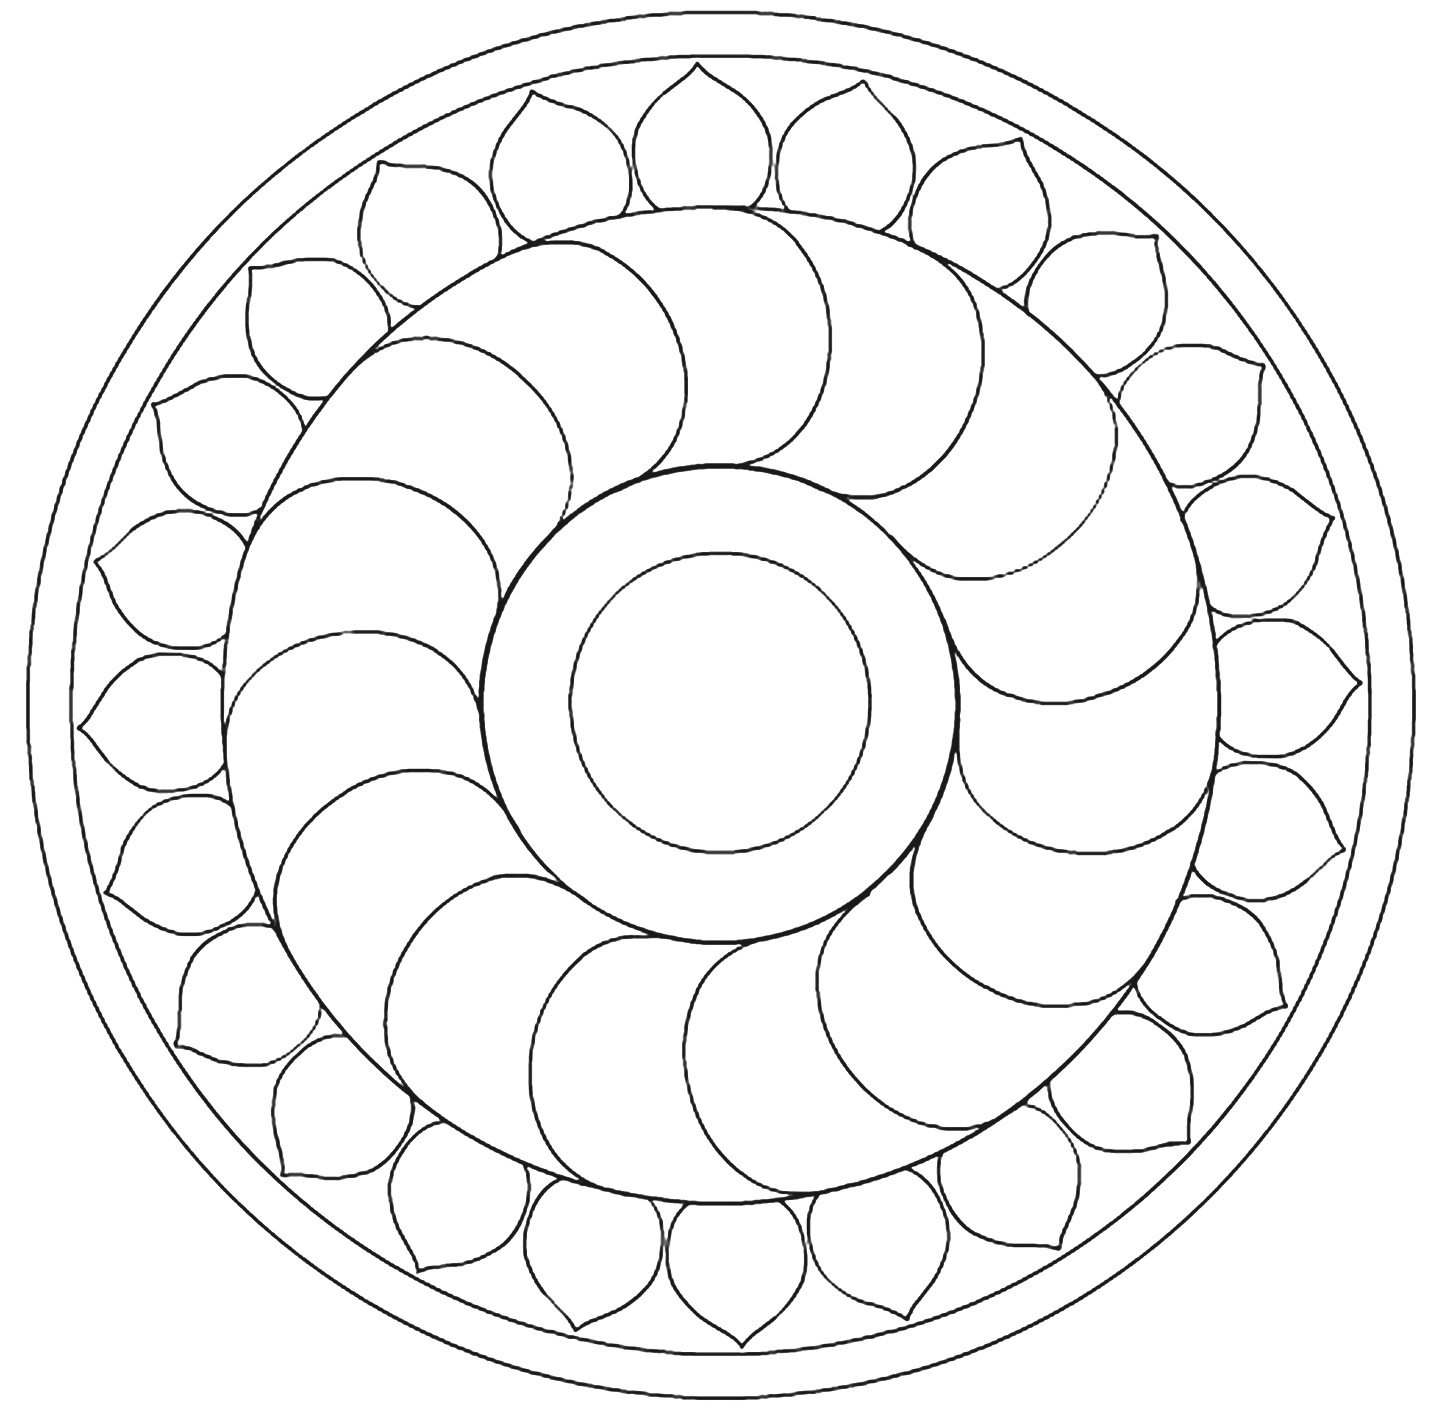 Smile will save the day: Mandalas coloring pages